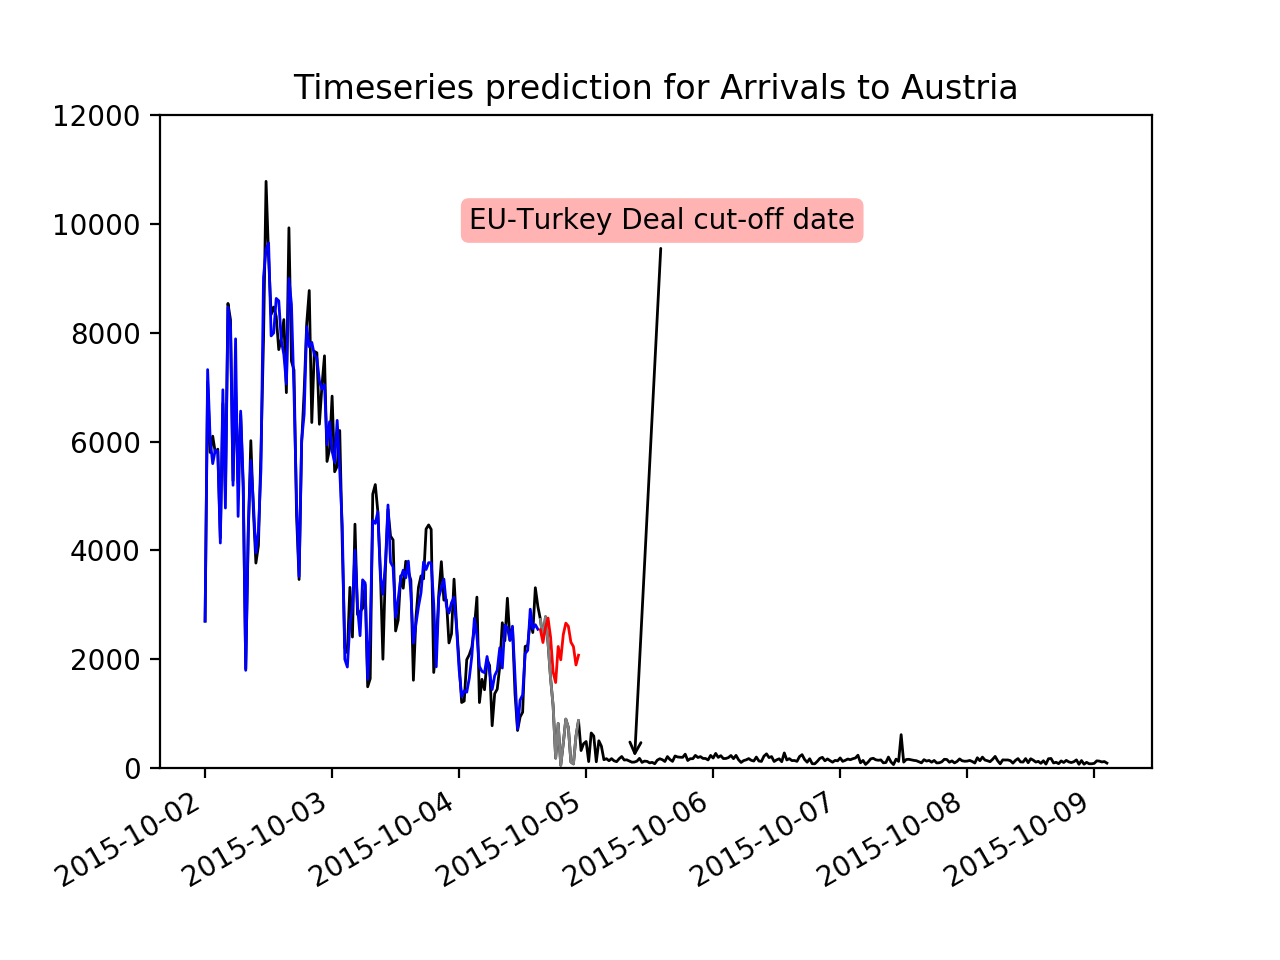 Multi-linear Regression on Arrivals for Austria